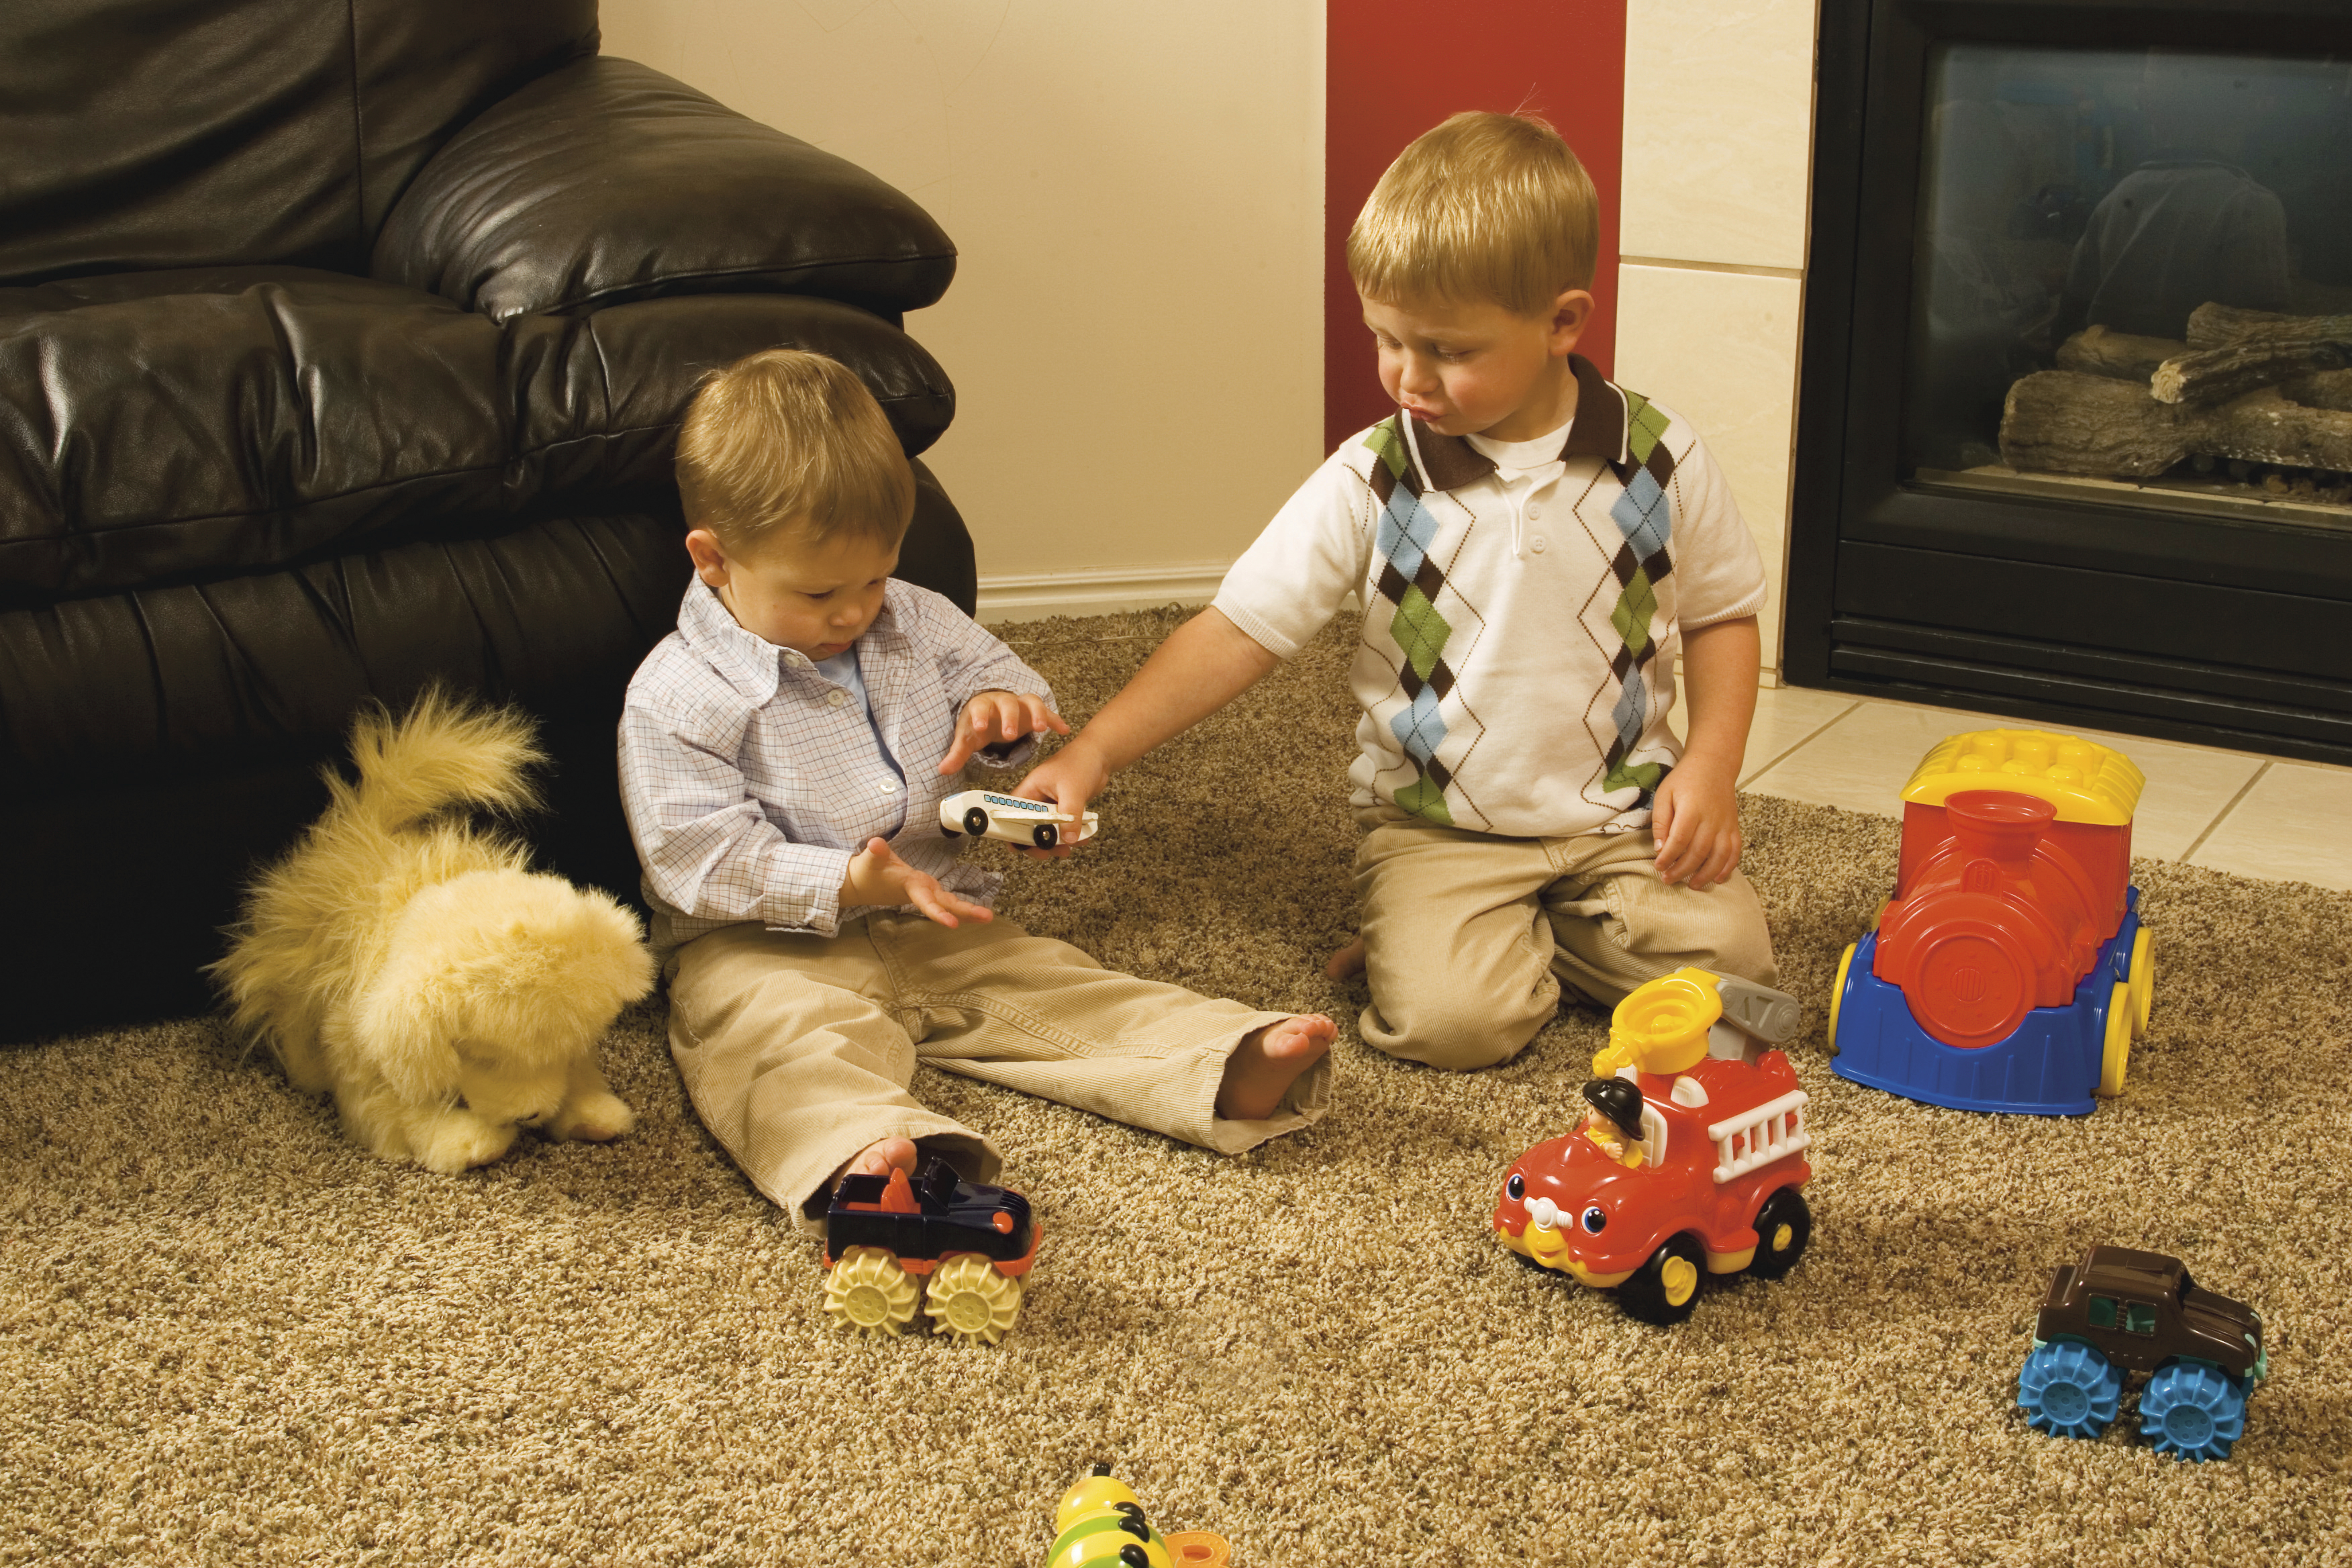 Two young brothers play with cars on the floor together.